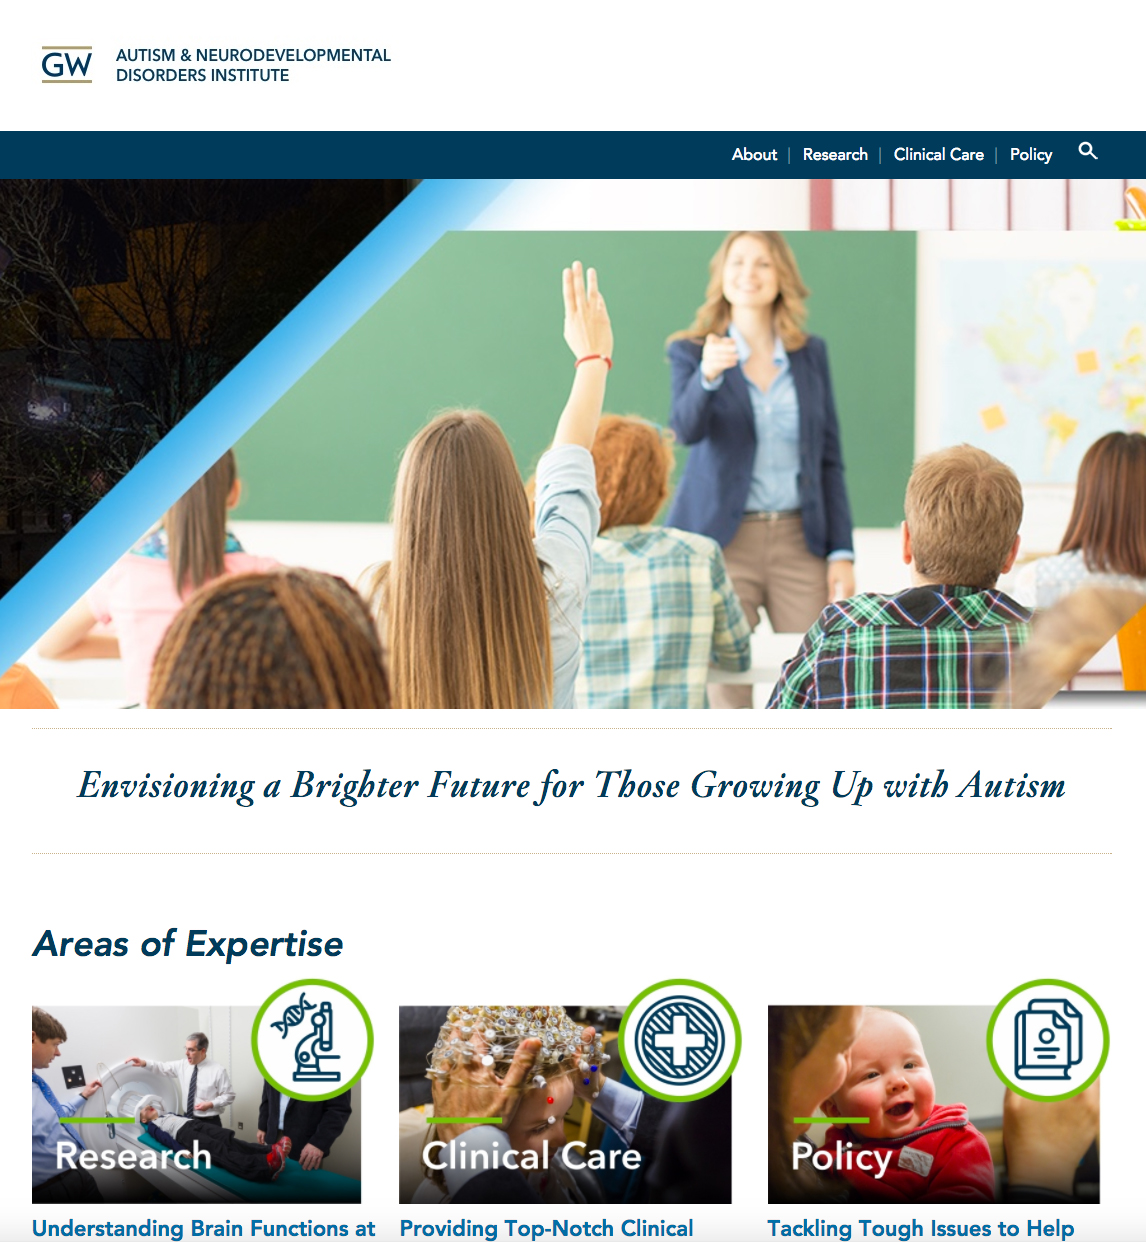 Screenshot of the Autism & Neurodevelopmental Disorders Institute website homepage